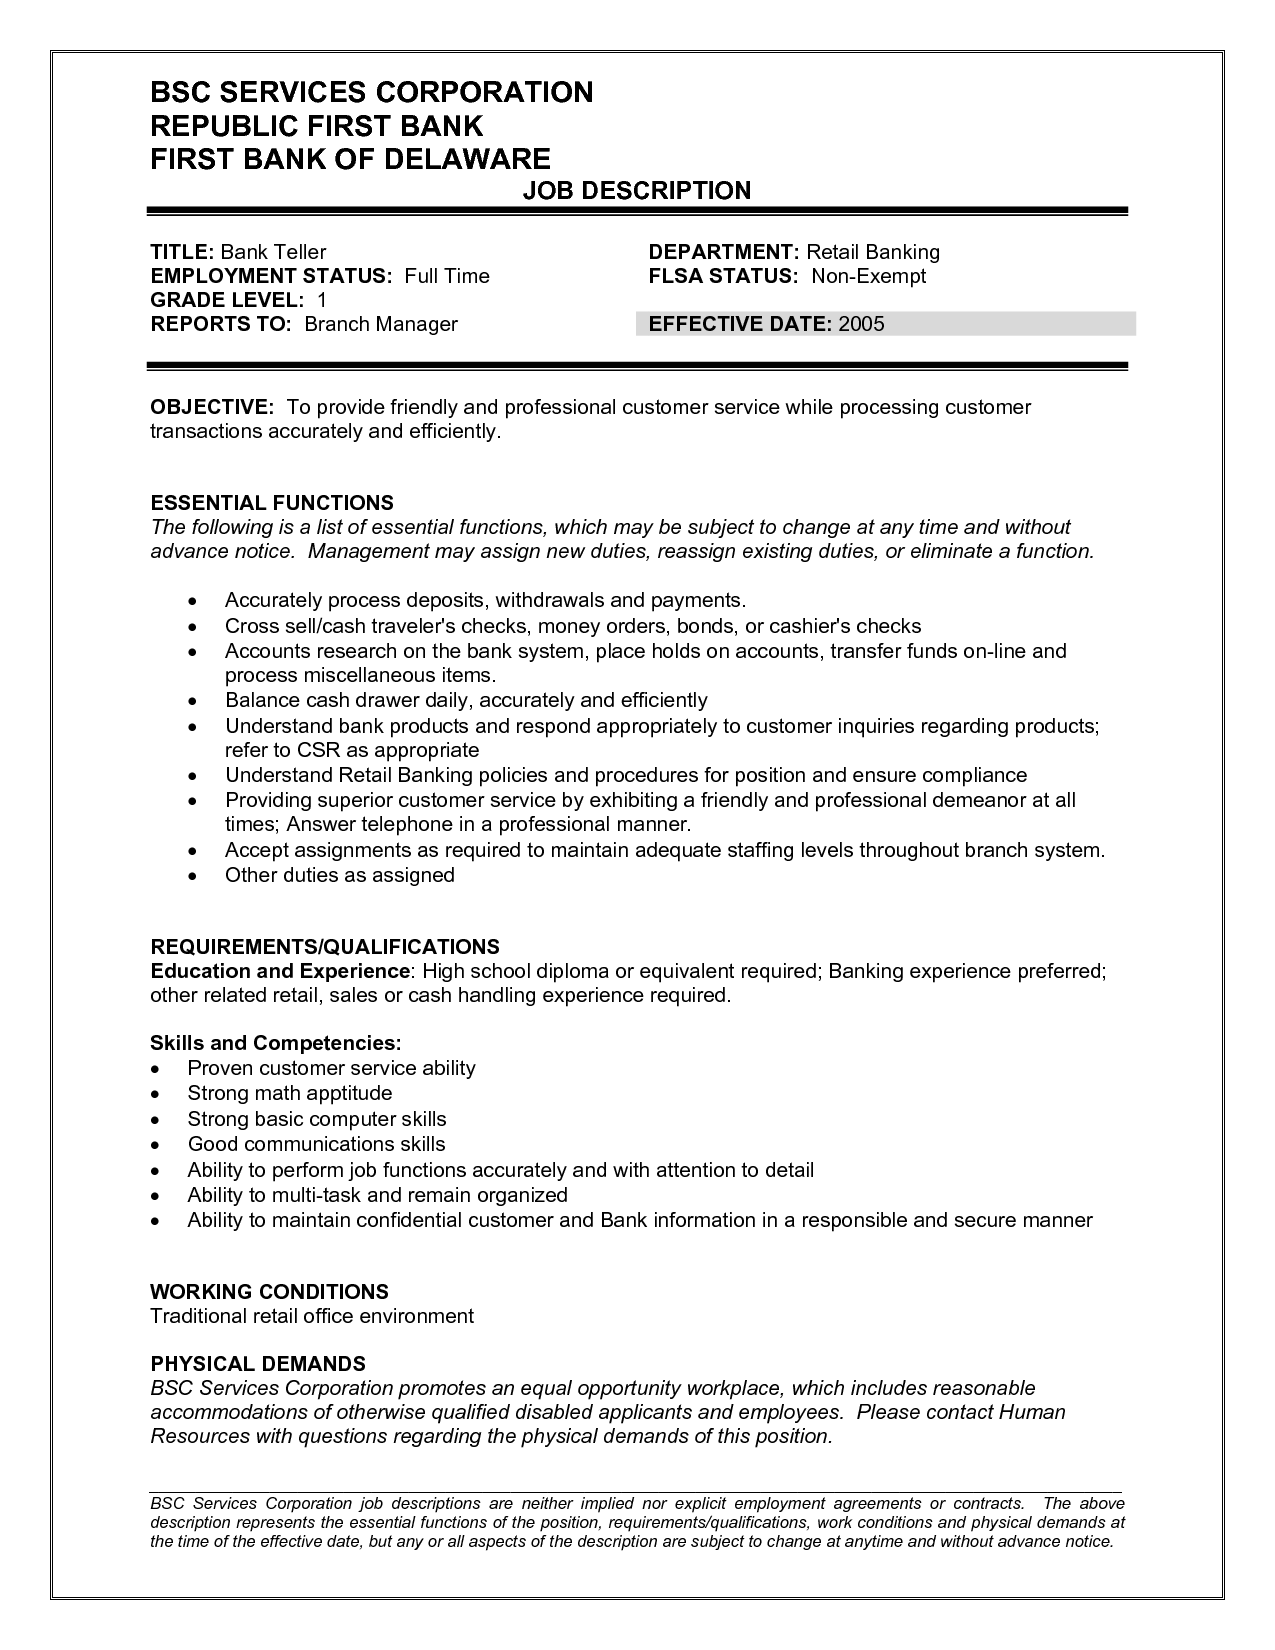 Bank Teller Job Description For Resume    Http://resumesdesign.com/bank Teller Job Description For Resume/